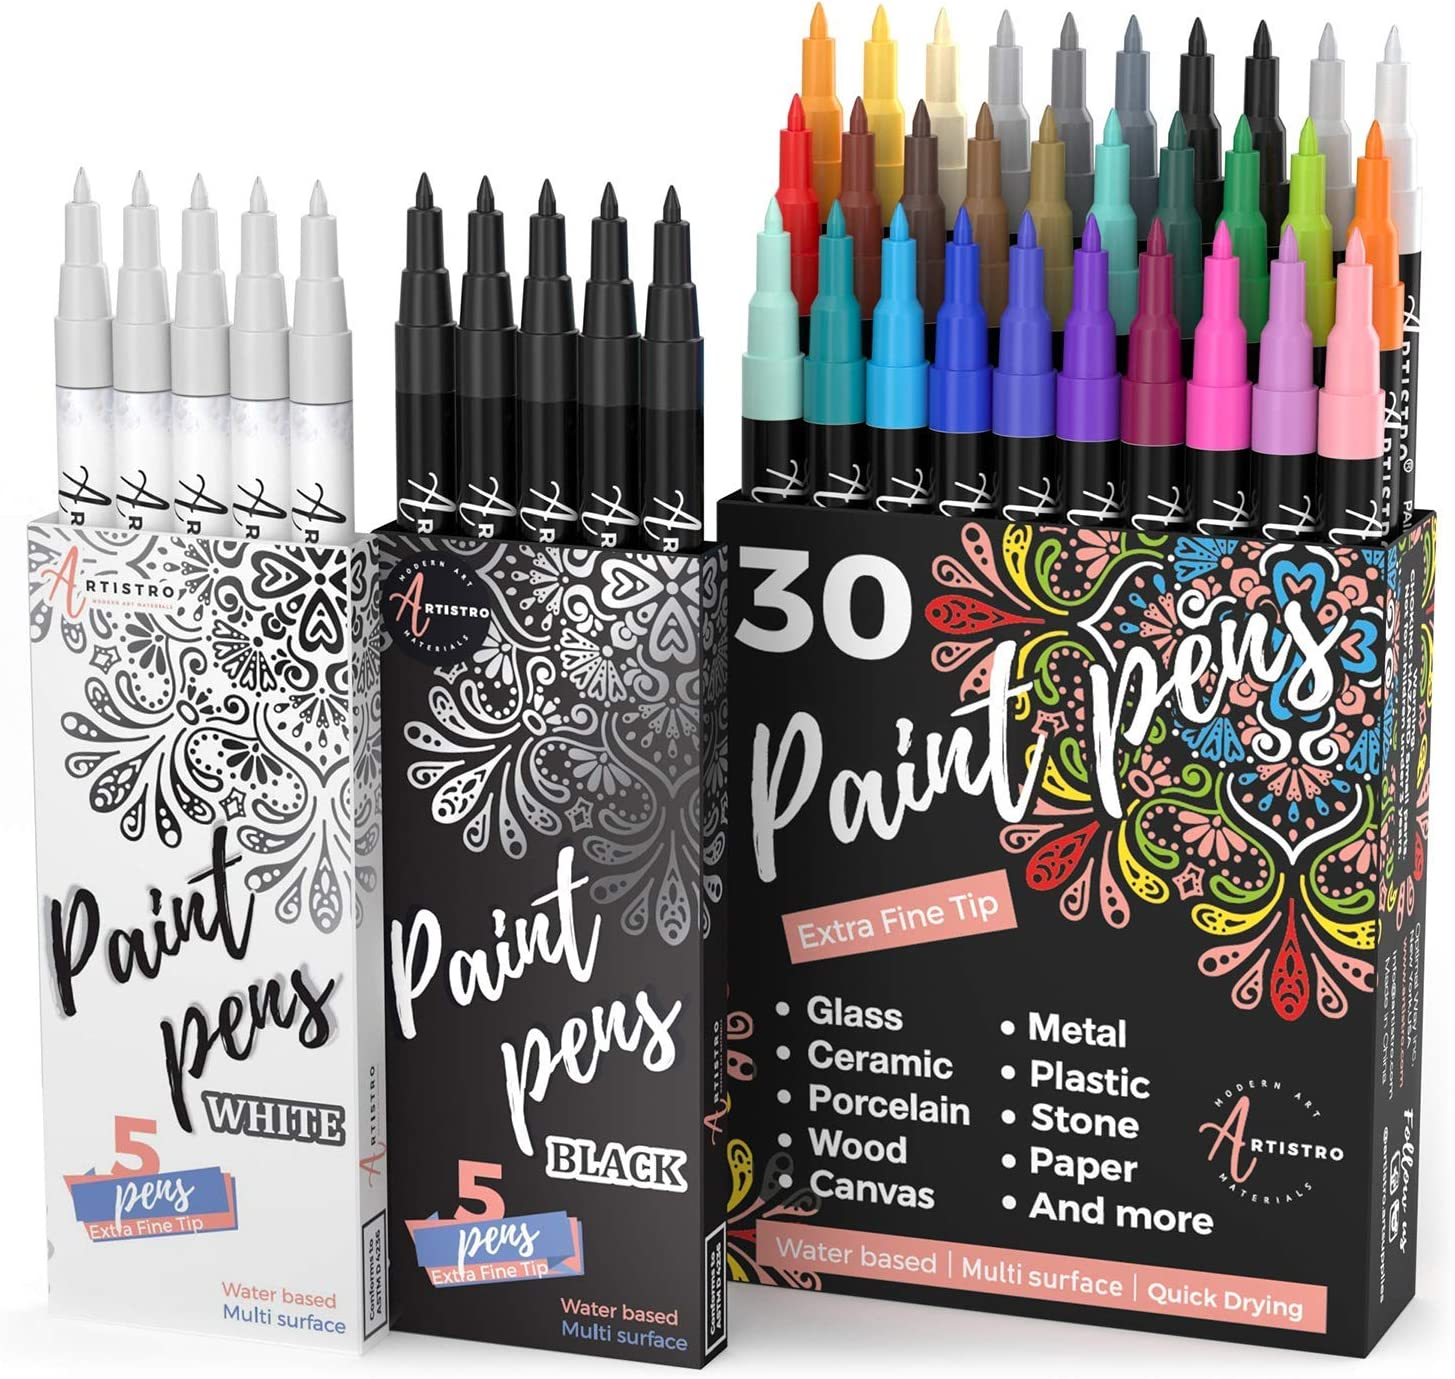 30 Acrylic Paint Markers Extra Fine Tip, 5 Acrylic Black Paint Markers and 5 Acrylic White Paint Markers, Bundle for Rock Painting, Wood, Fabric, Card, Paper, Photo Album, Ceramic & Glass